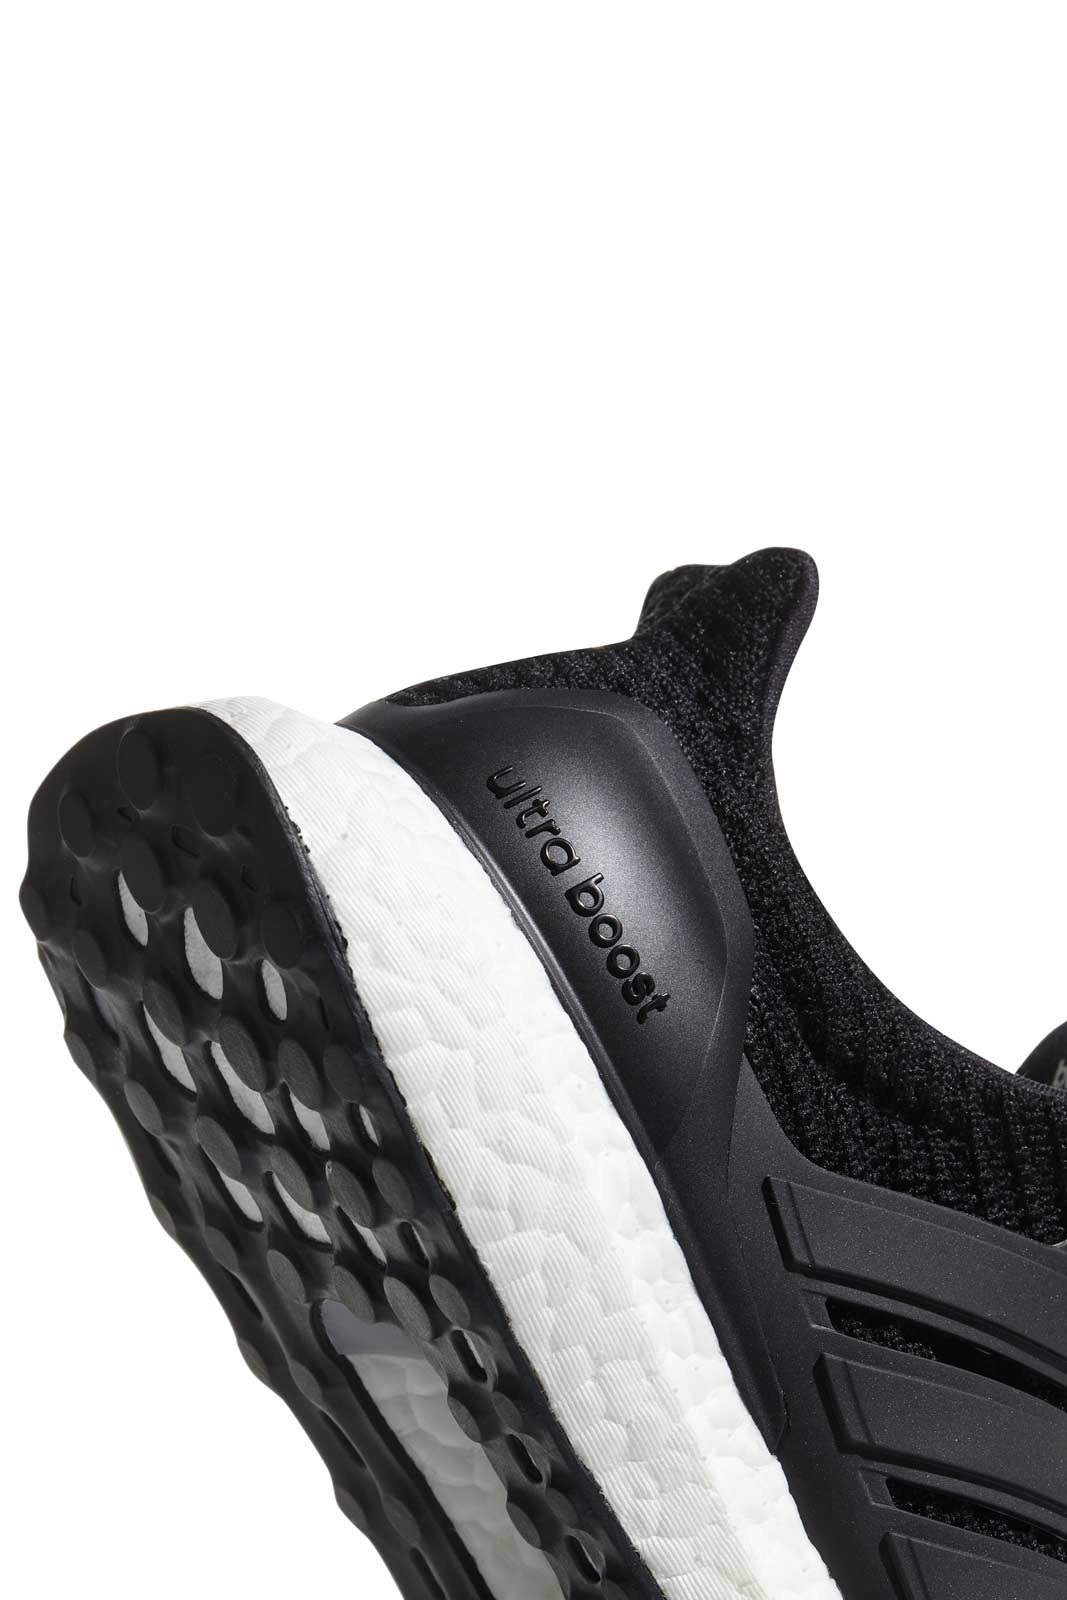 ADIDAS Ultra Boost 4.0 - Core Black - Women's image 2 - The Sports Edit